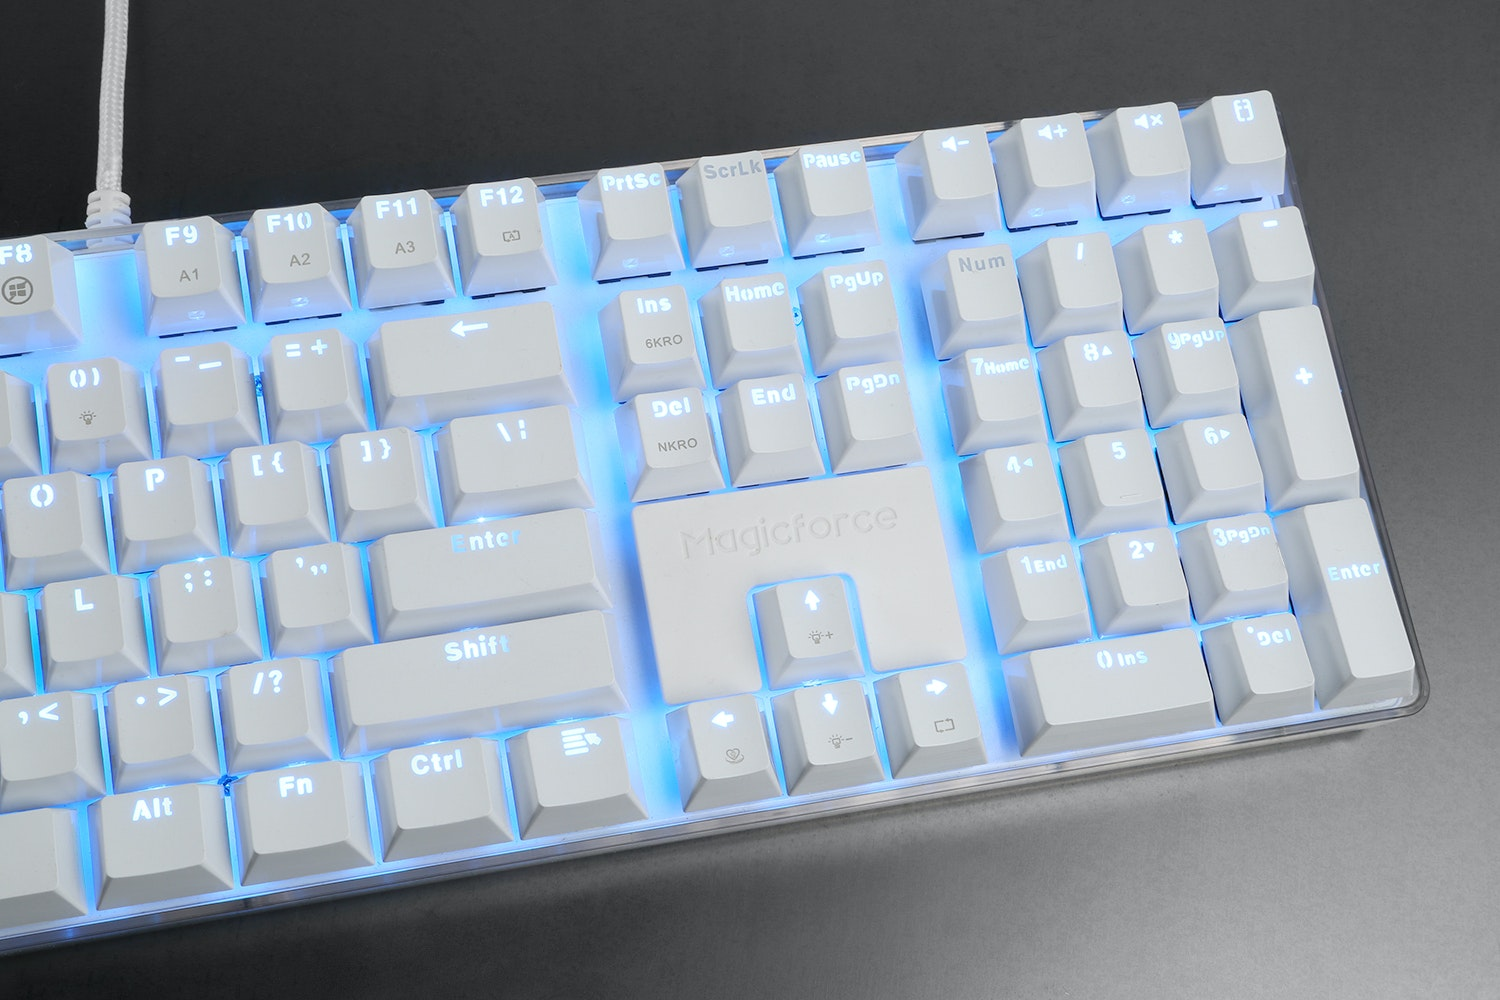 Magicforce Full Size Mechanical Keyboard